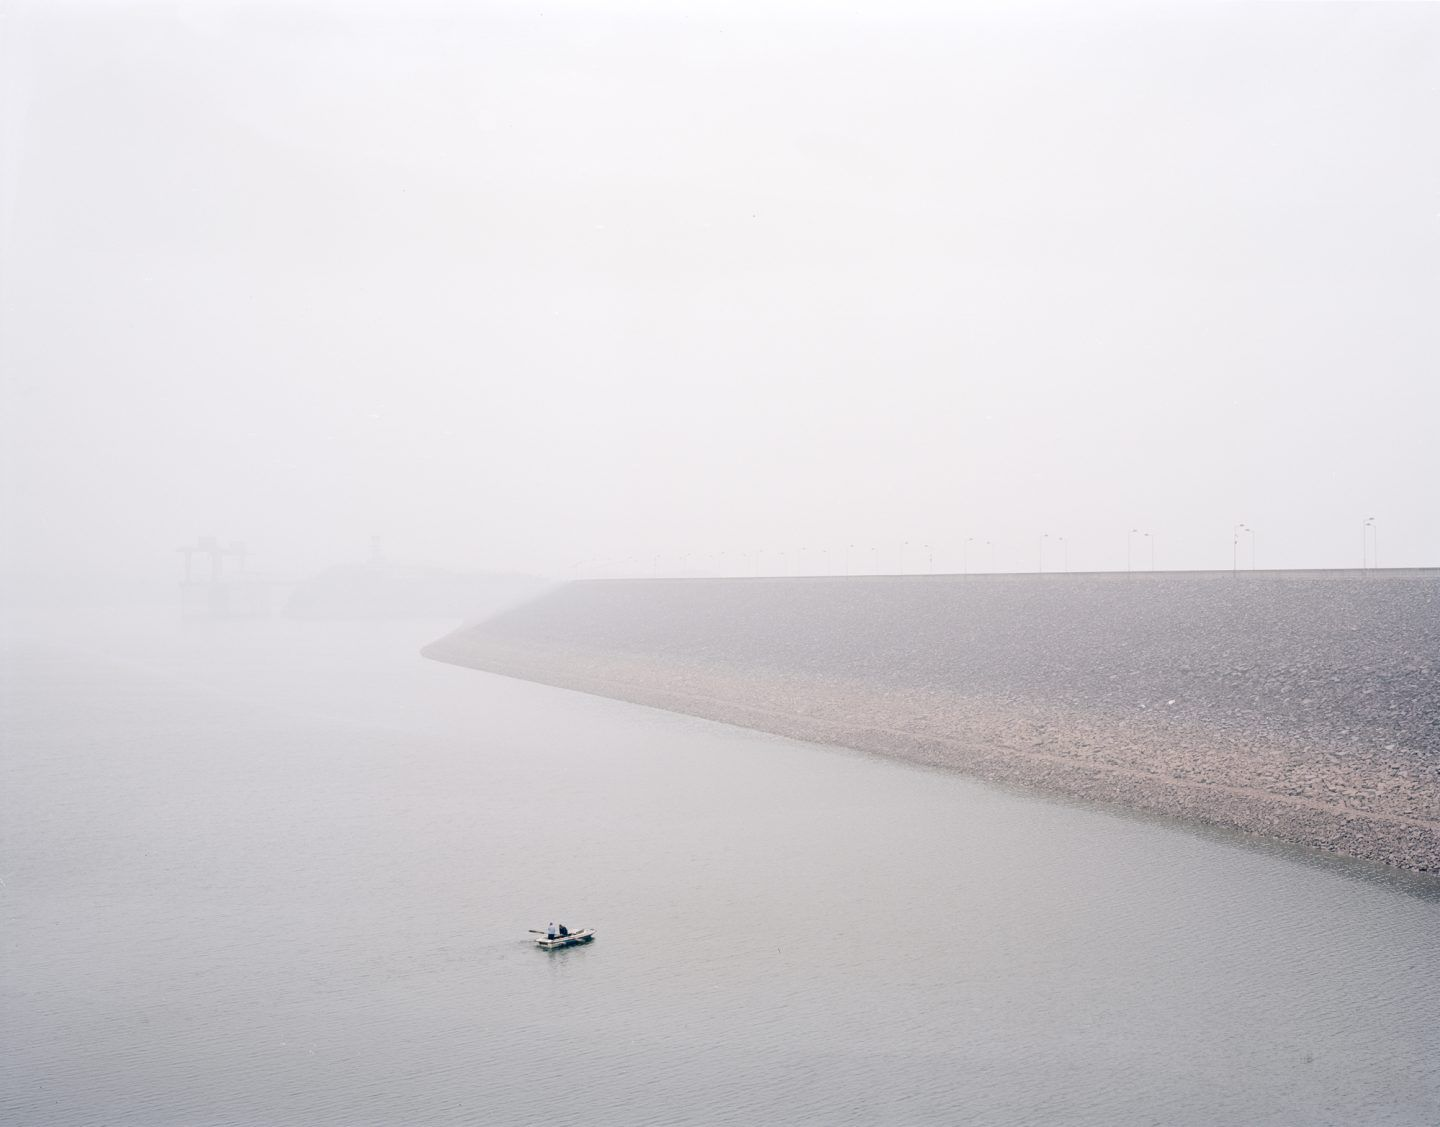 IGNANT-Photography-Zhang-Kechun-The-Yellow-River-020